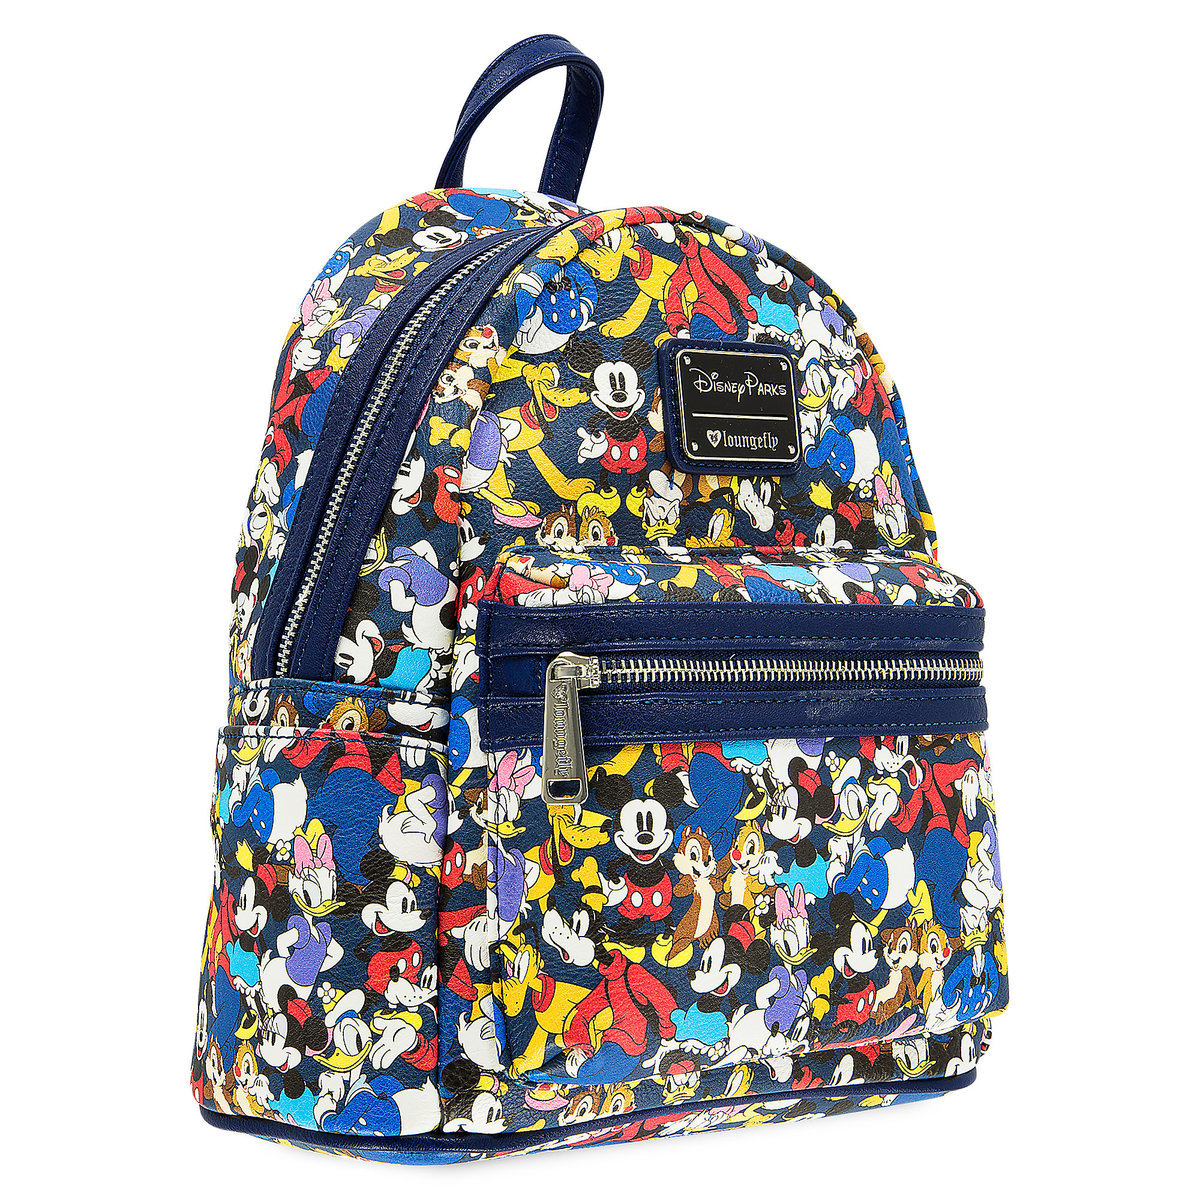 e8b0105f7d Disney Parks Mini Backpack - Mickey and Friends by Loungefly